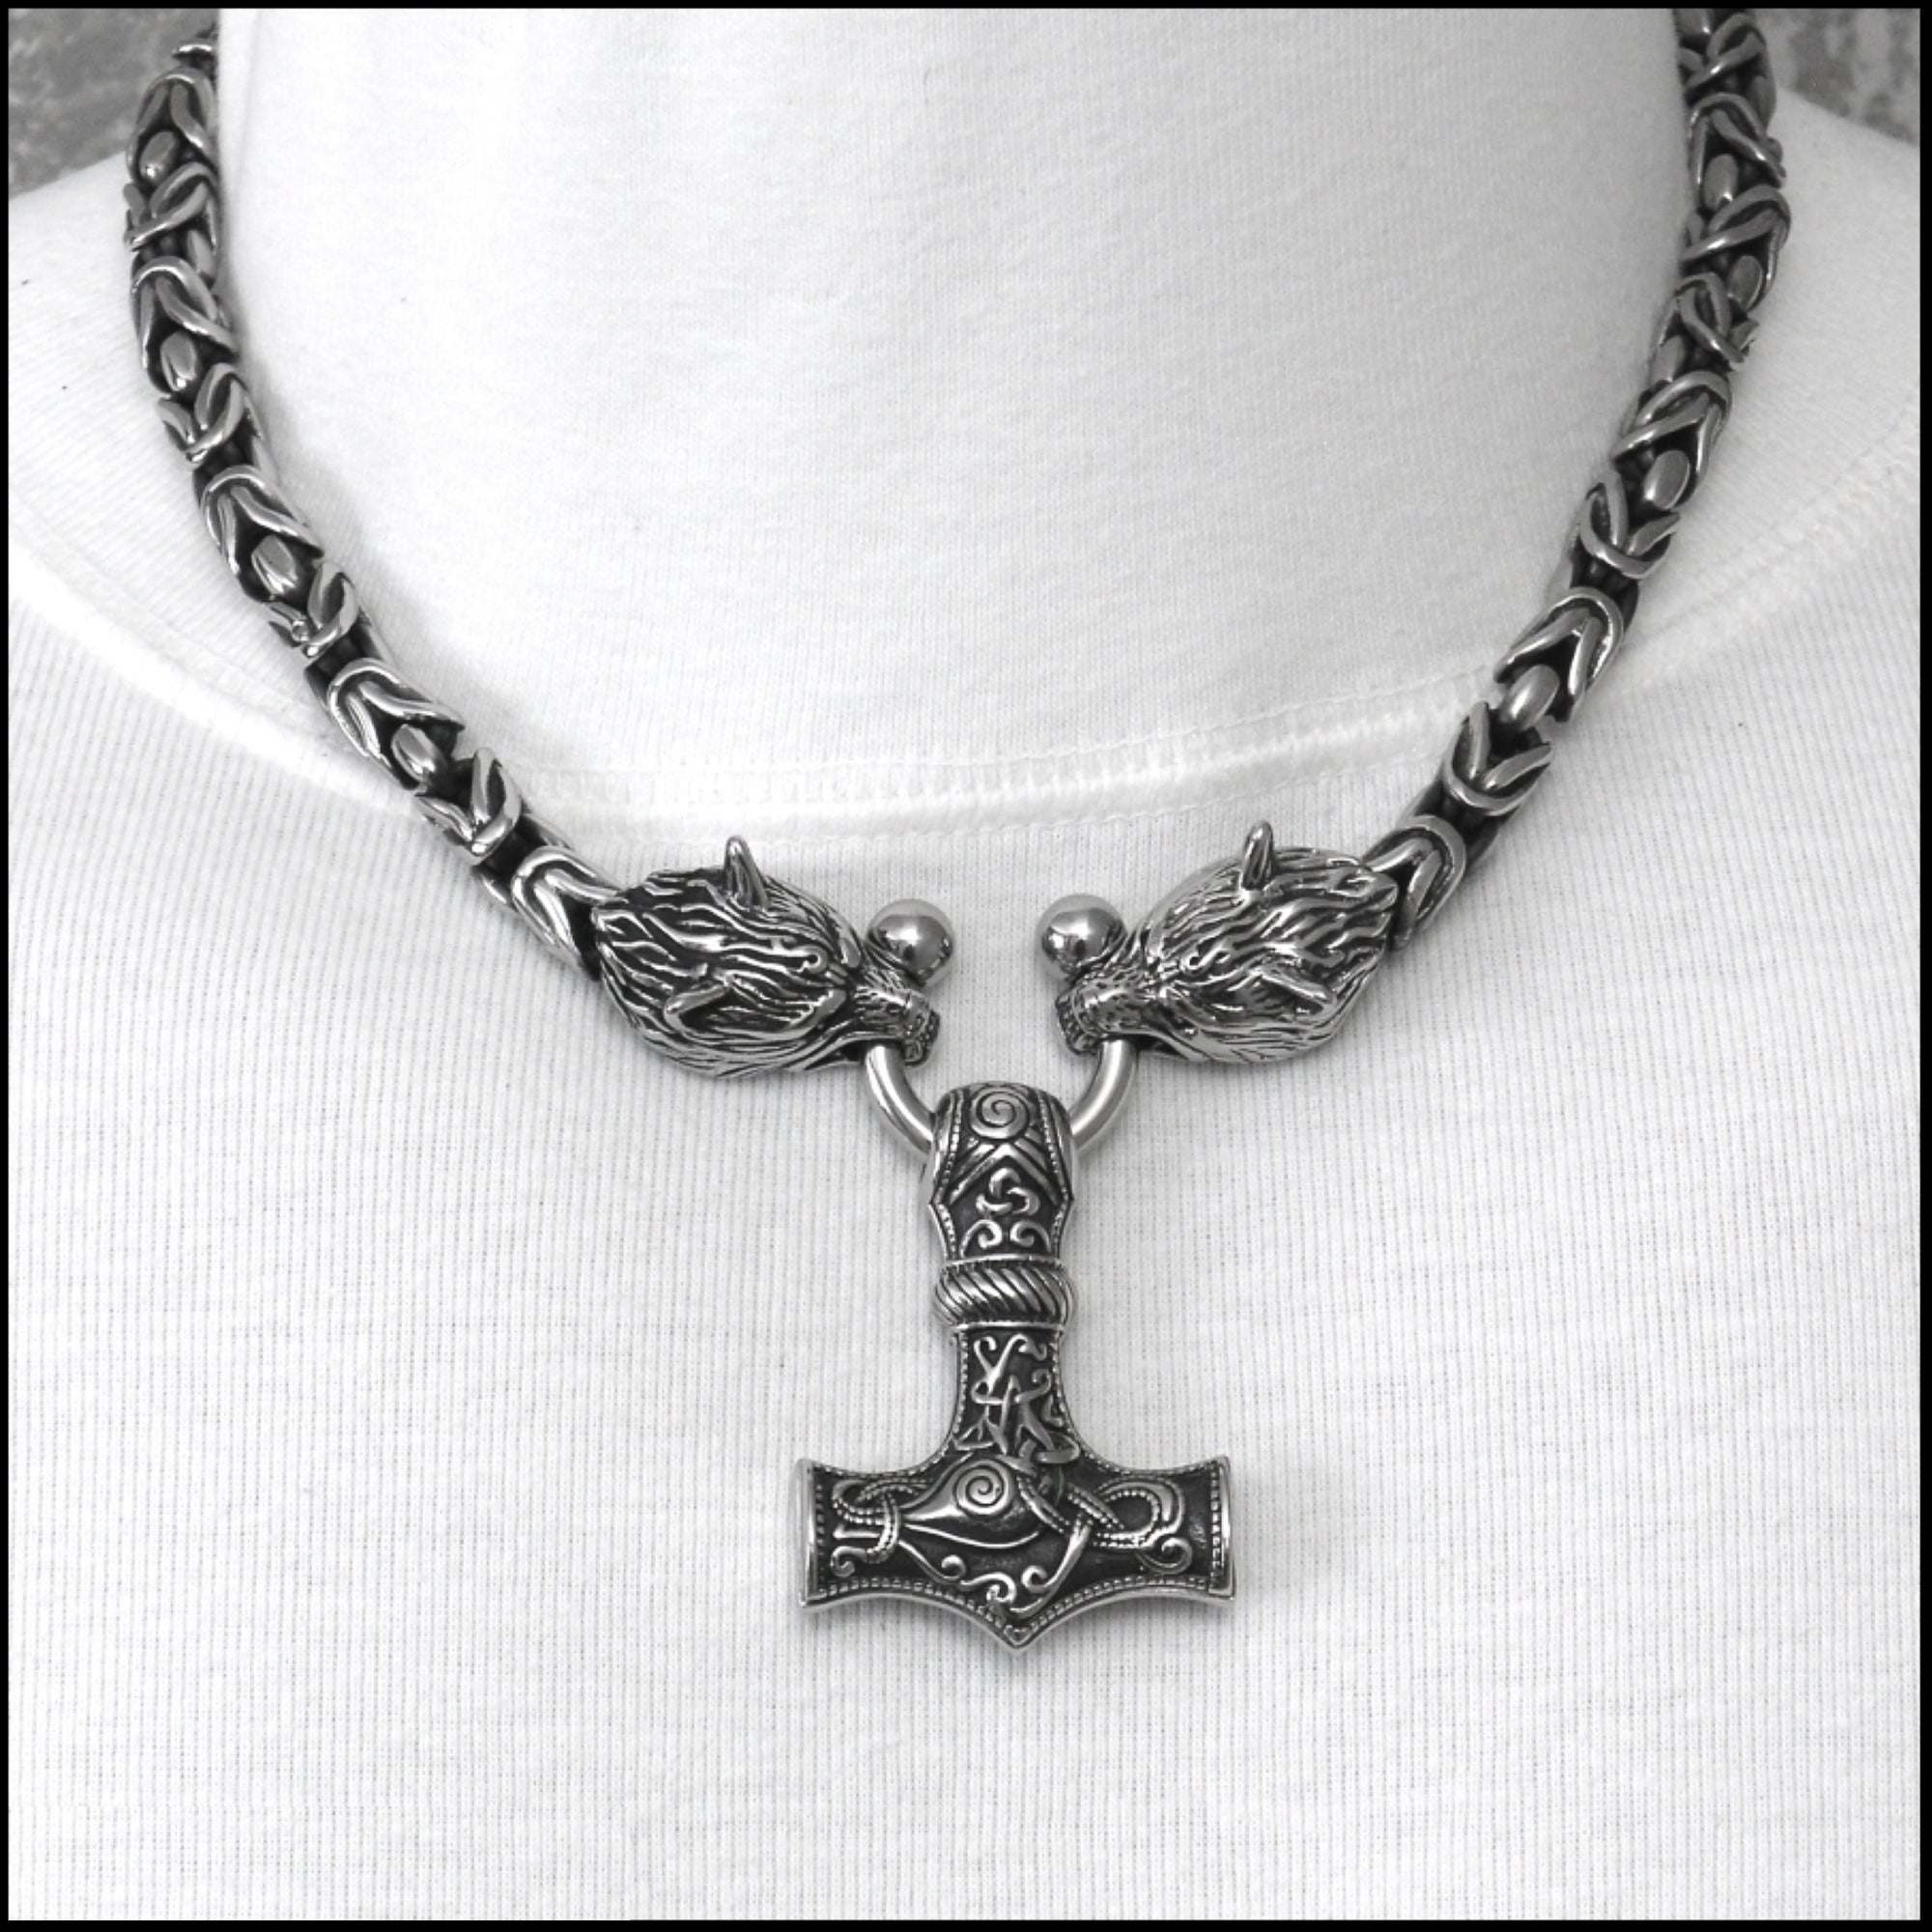 Viking King Choker Style Necklace with Large Mjolnir on Snarling Wolf Head Borobudur Design Chain Necklace with Torc Connector